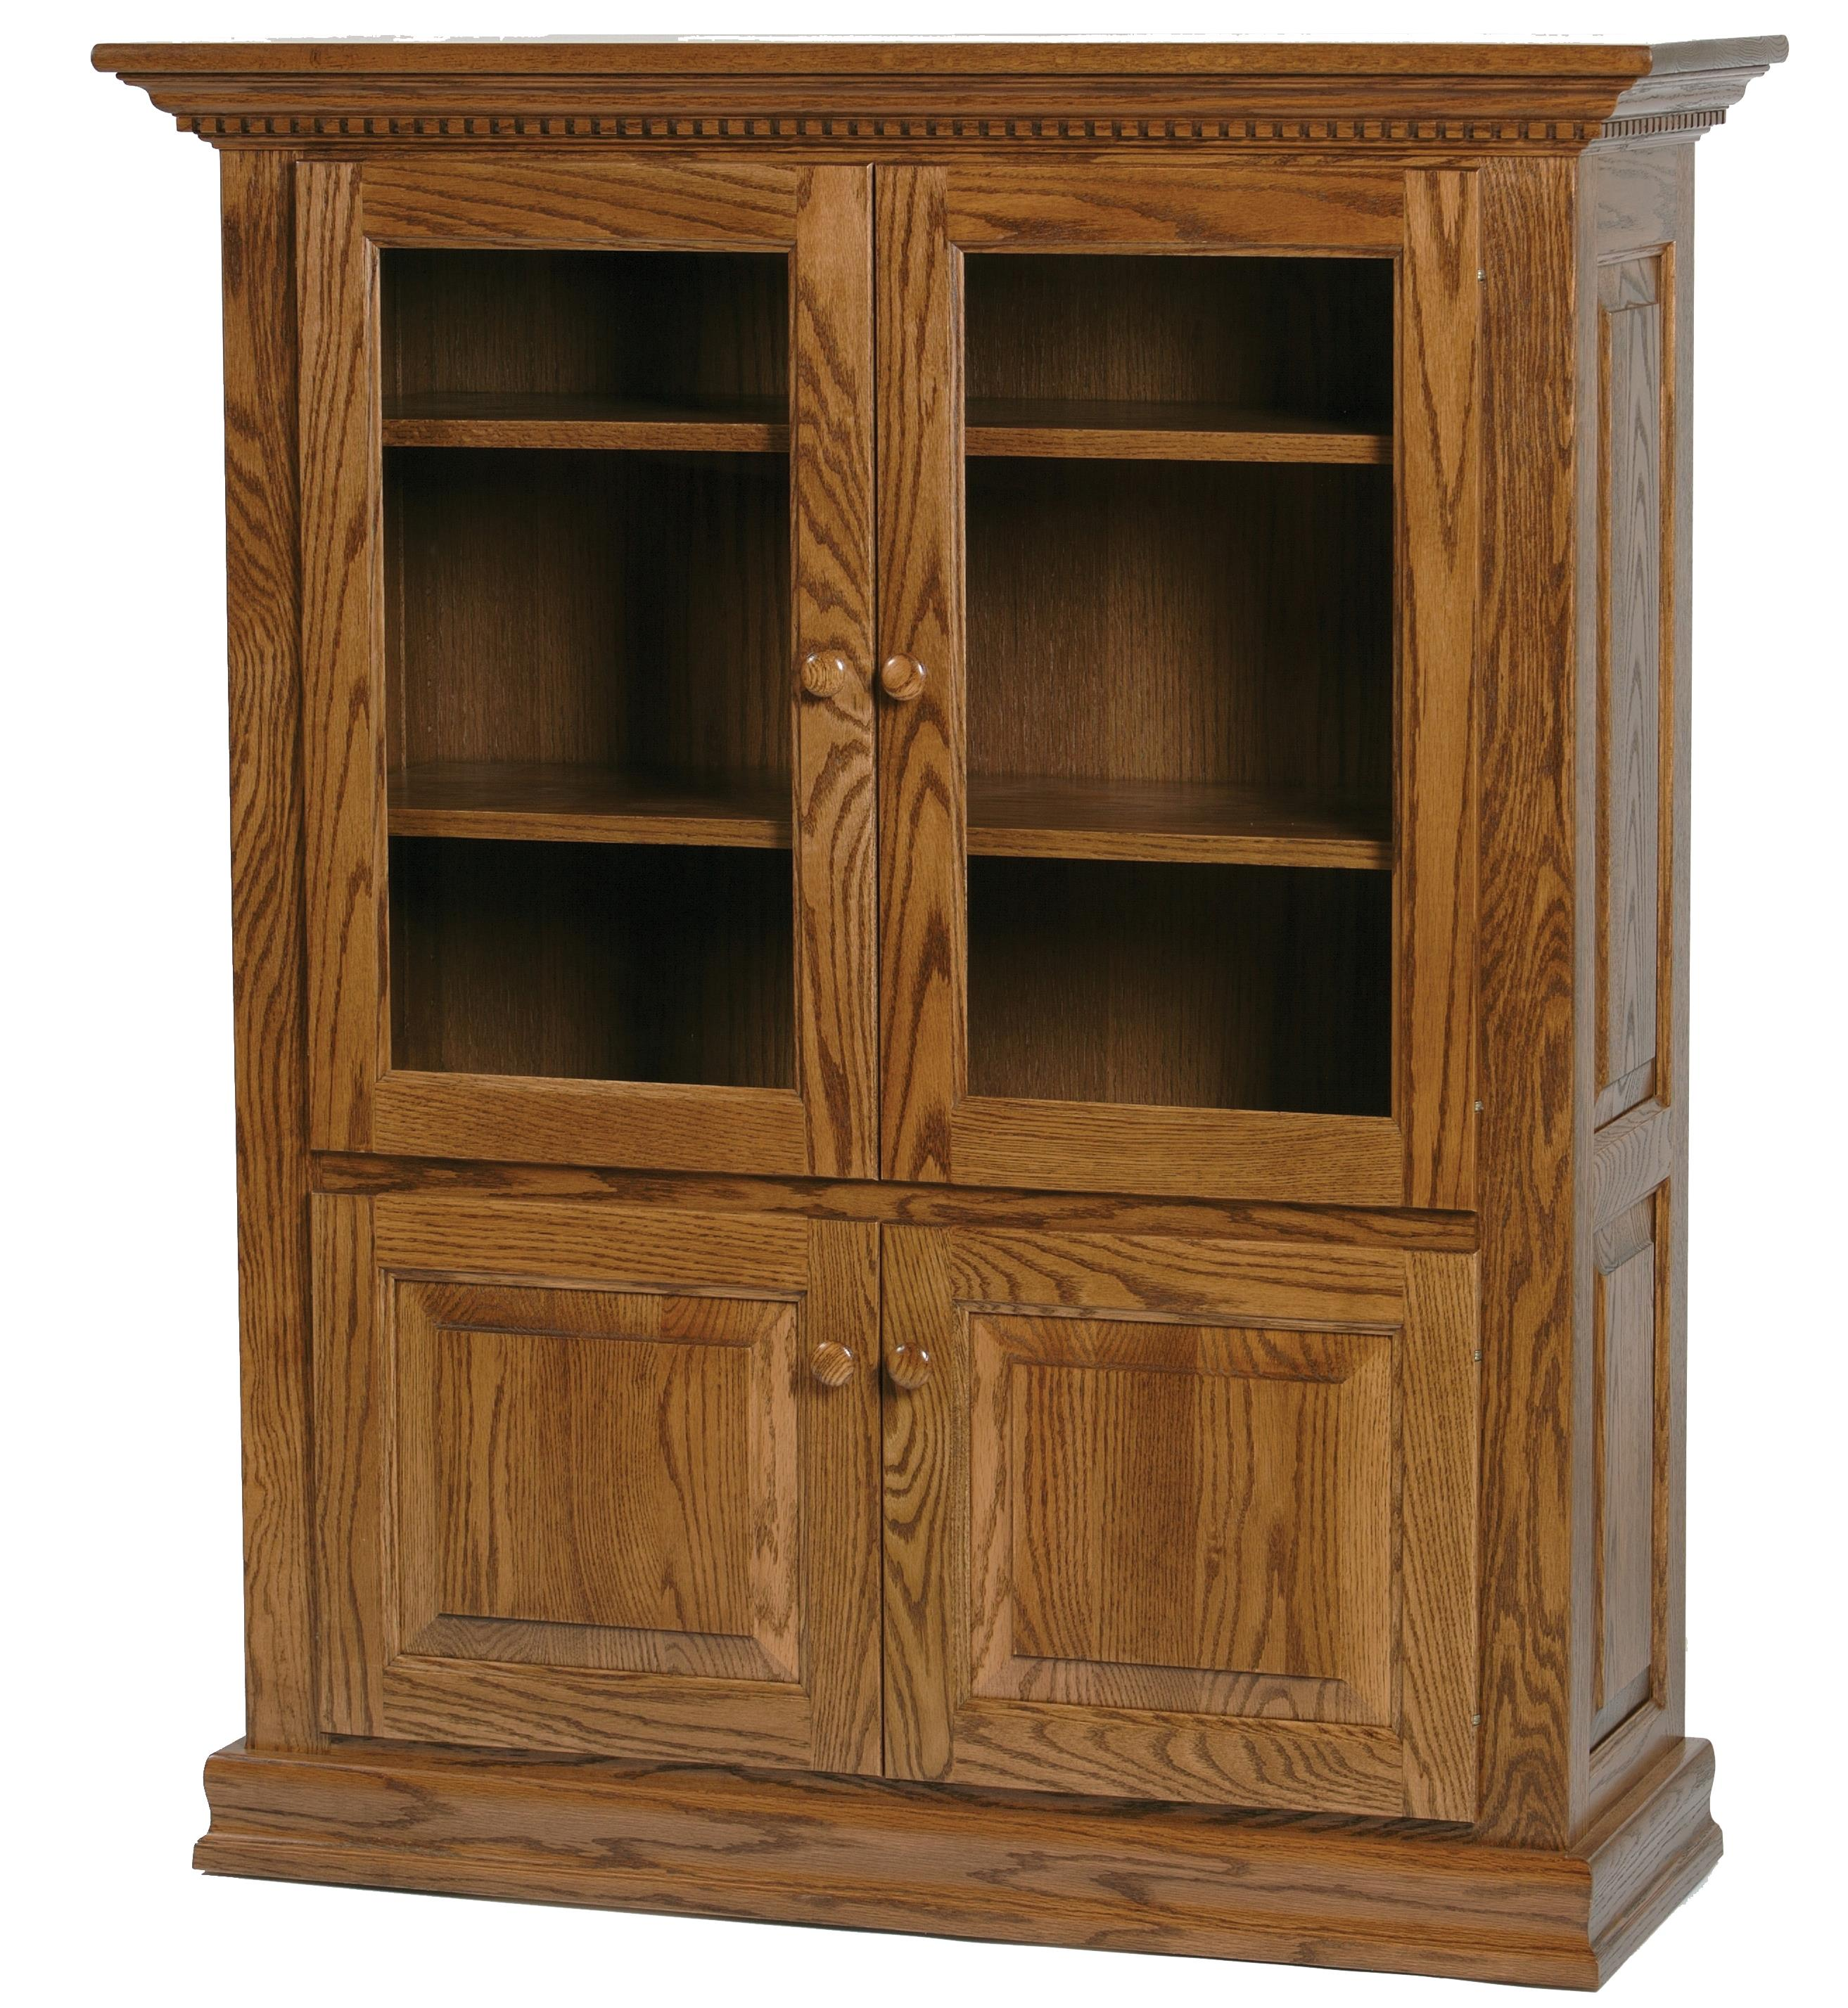 Wonder Wood Bookcases Customizable Classic Bookcase by Wonder Wood at Saugerties Furniture Mart